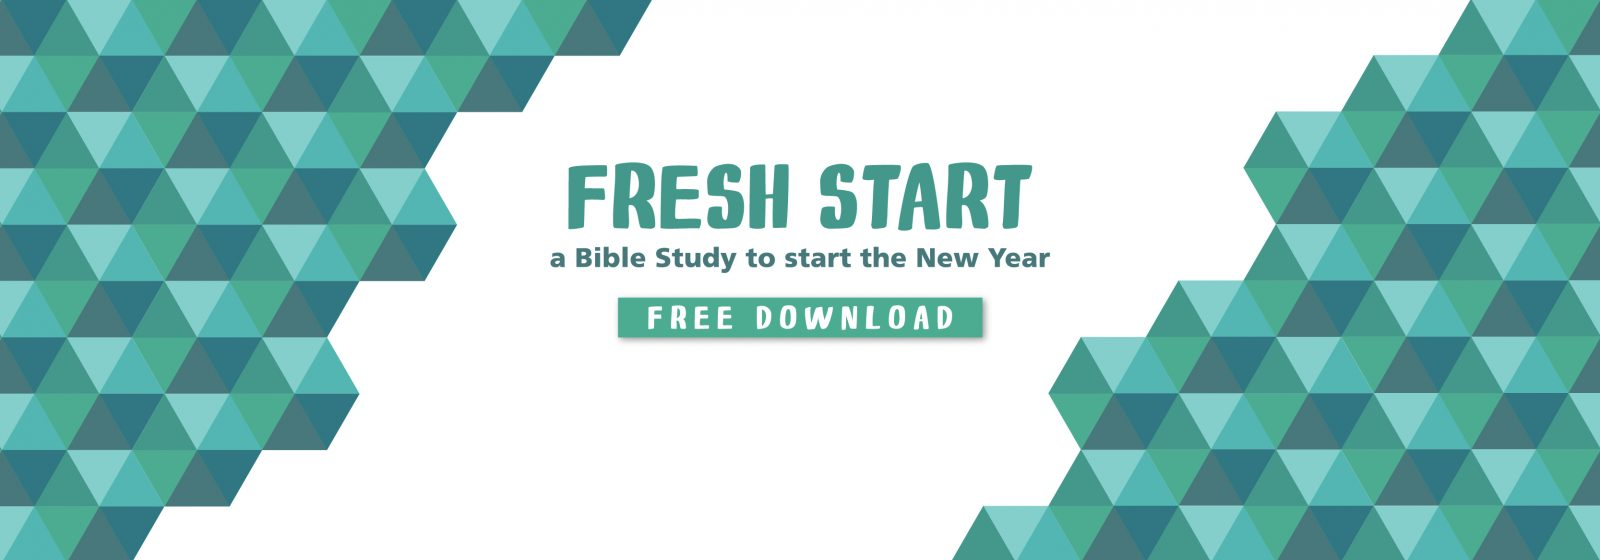 new year bible study for students